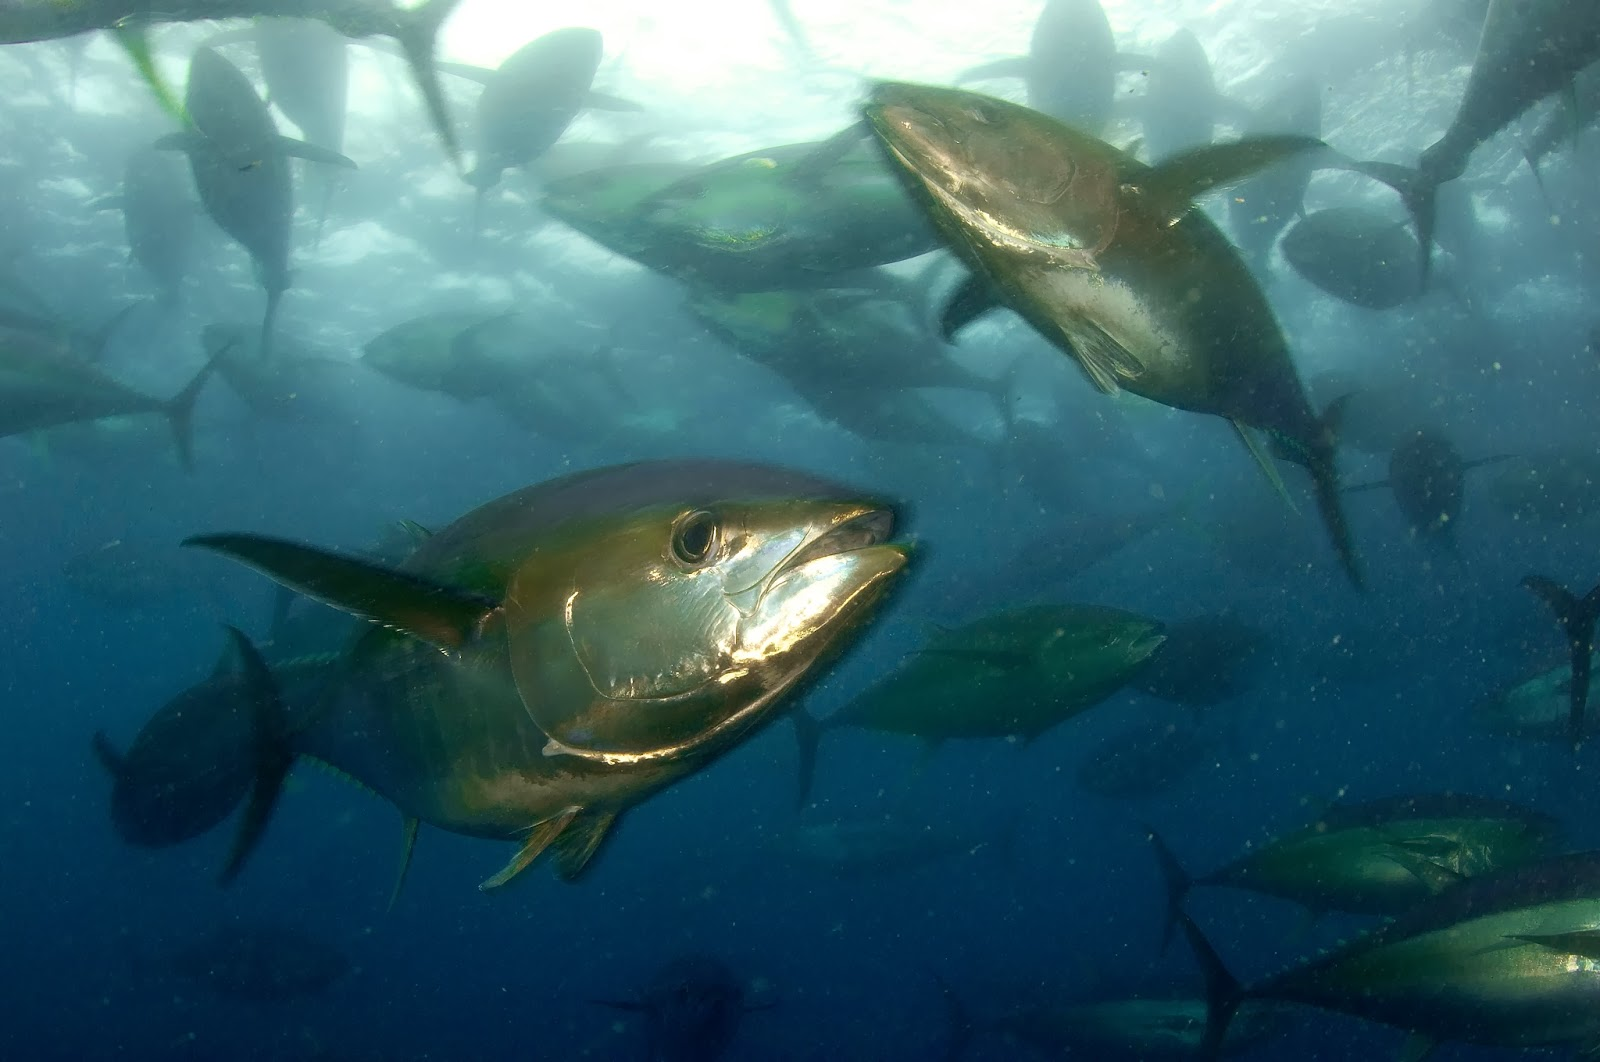 Two Yellowfin tuna fishes wallpaper